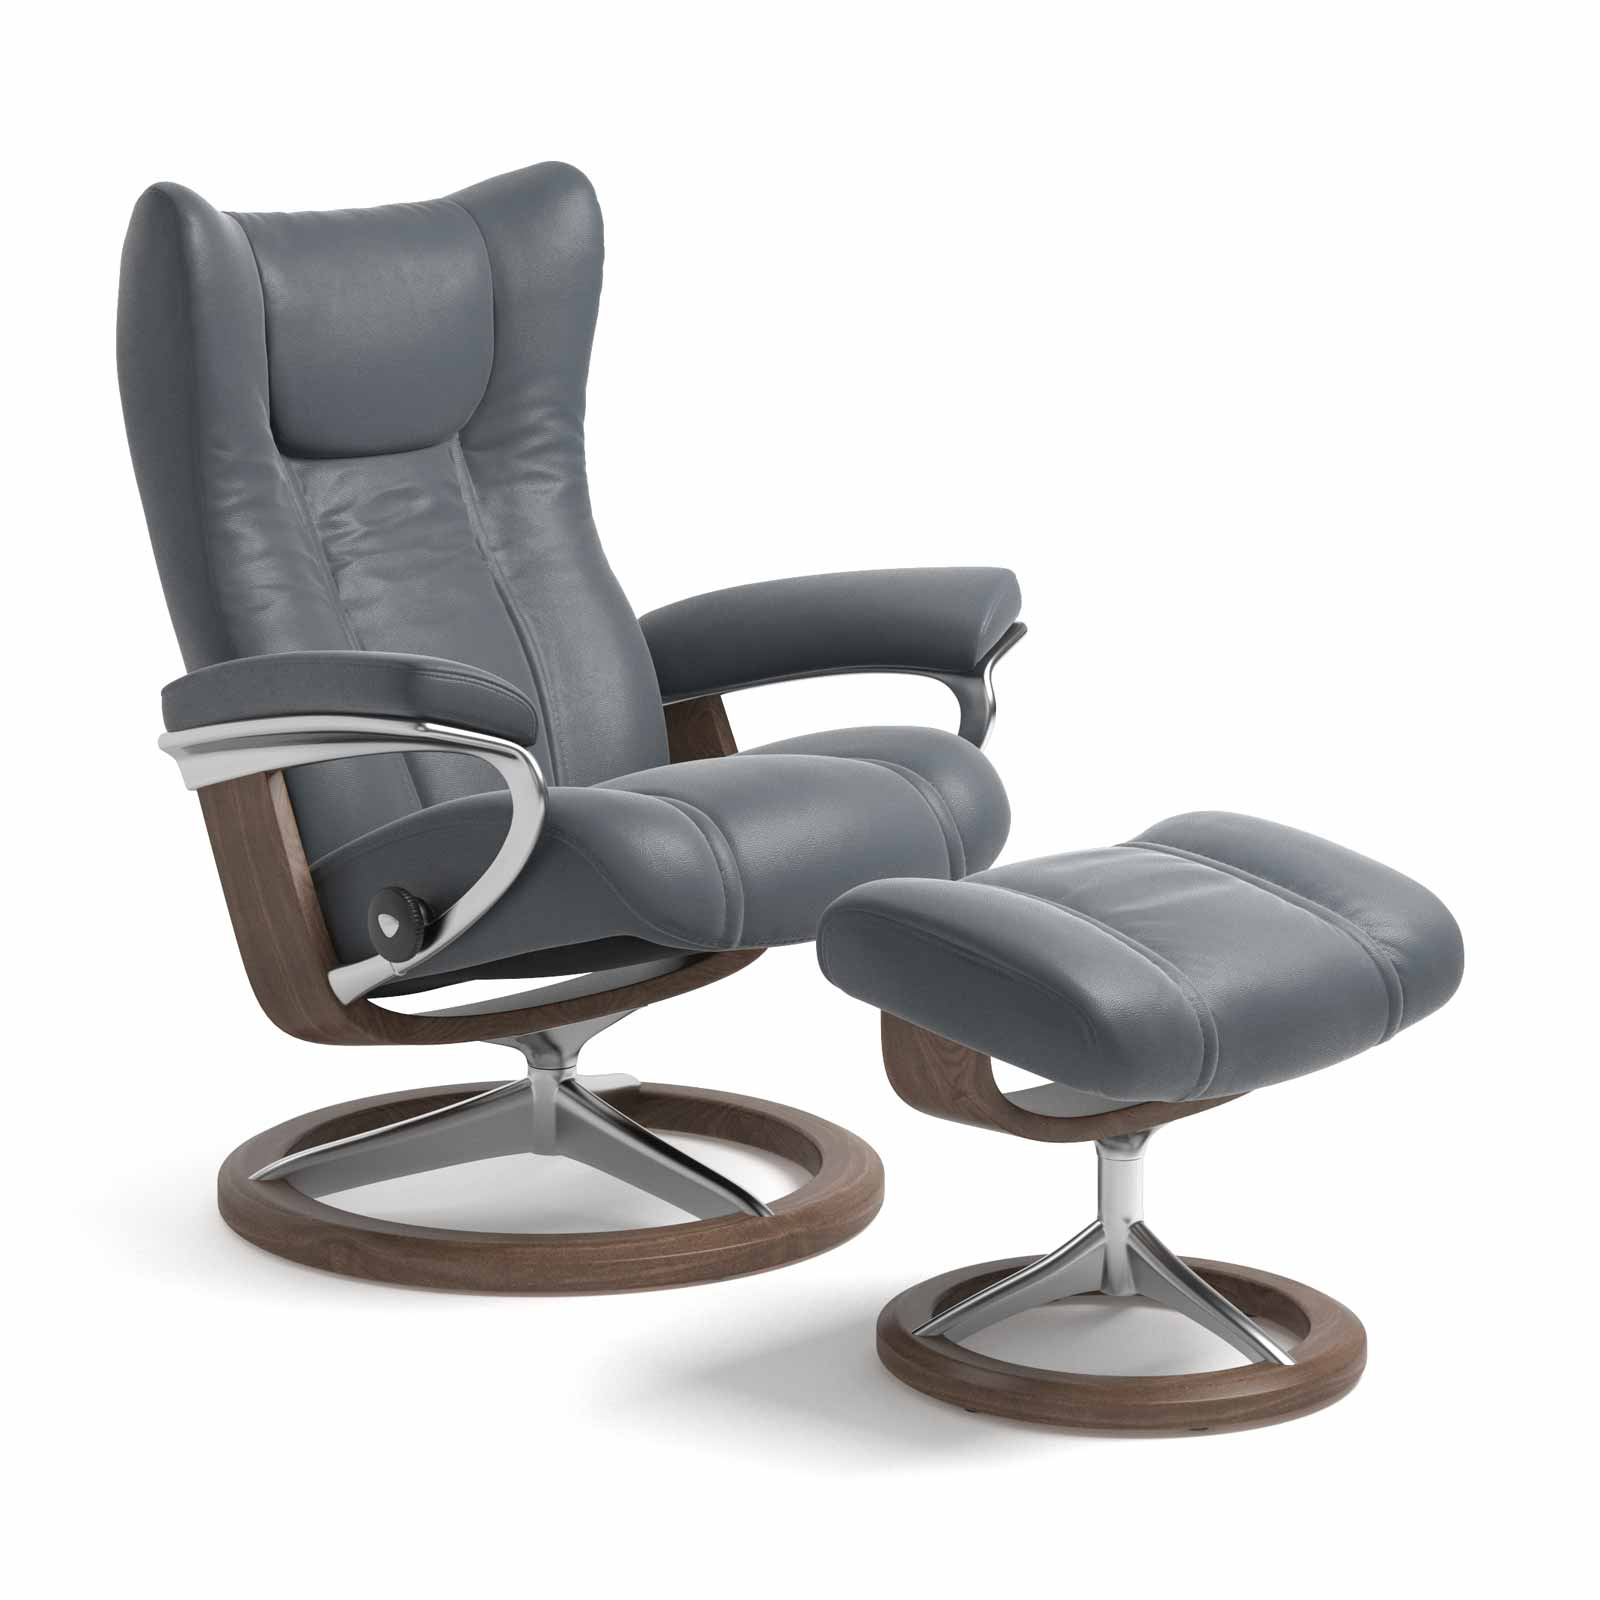 Stressless Wing Signature Sessel Stressless Sessel Wing Signature Batick Atlantic Blue Mit